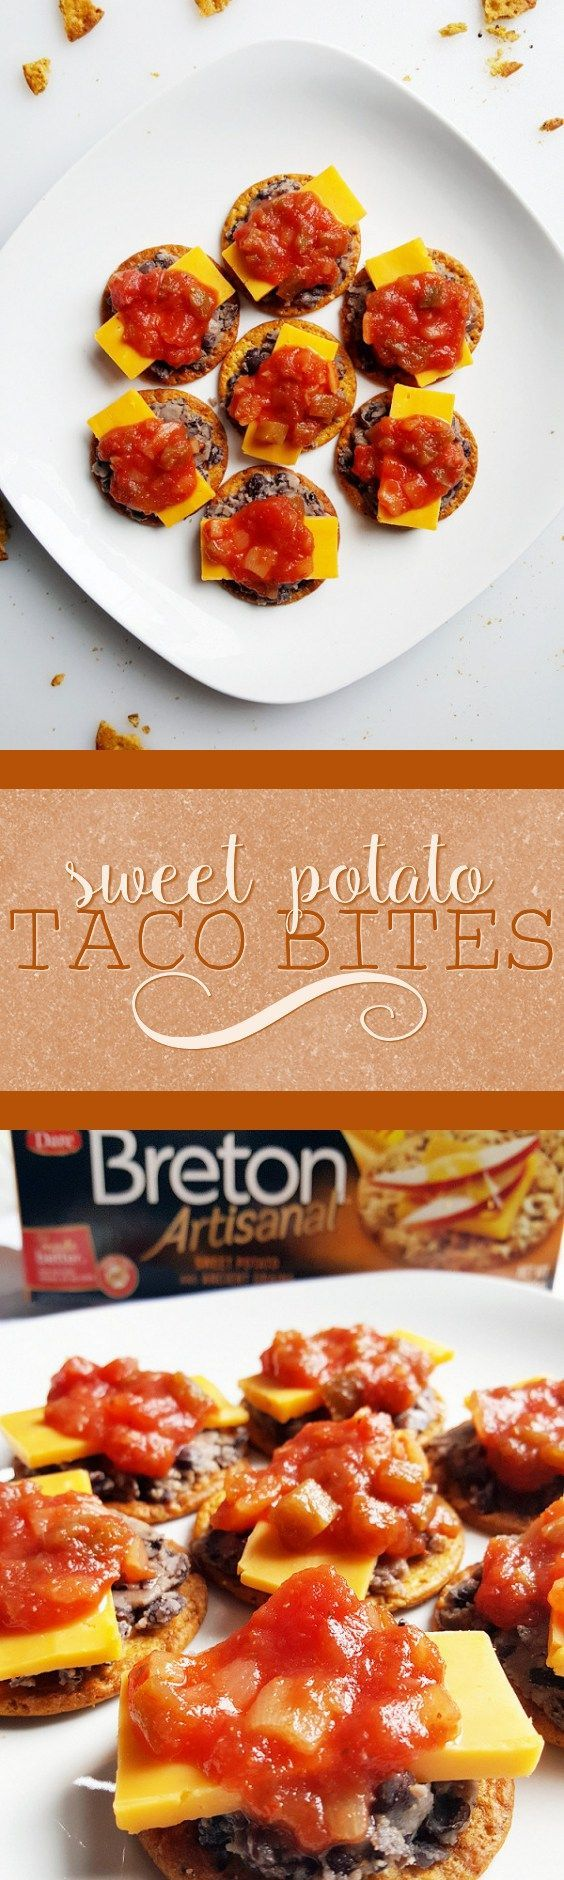 #Sponsored These sweet potato taco bites are perfect for a quick and delicious snack or appetizer!